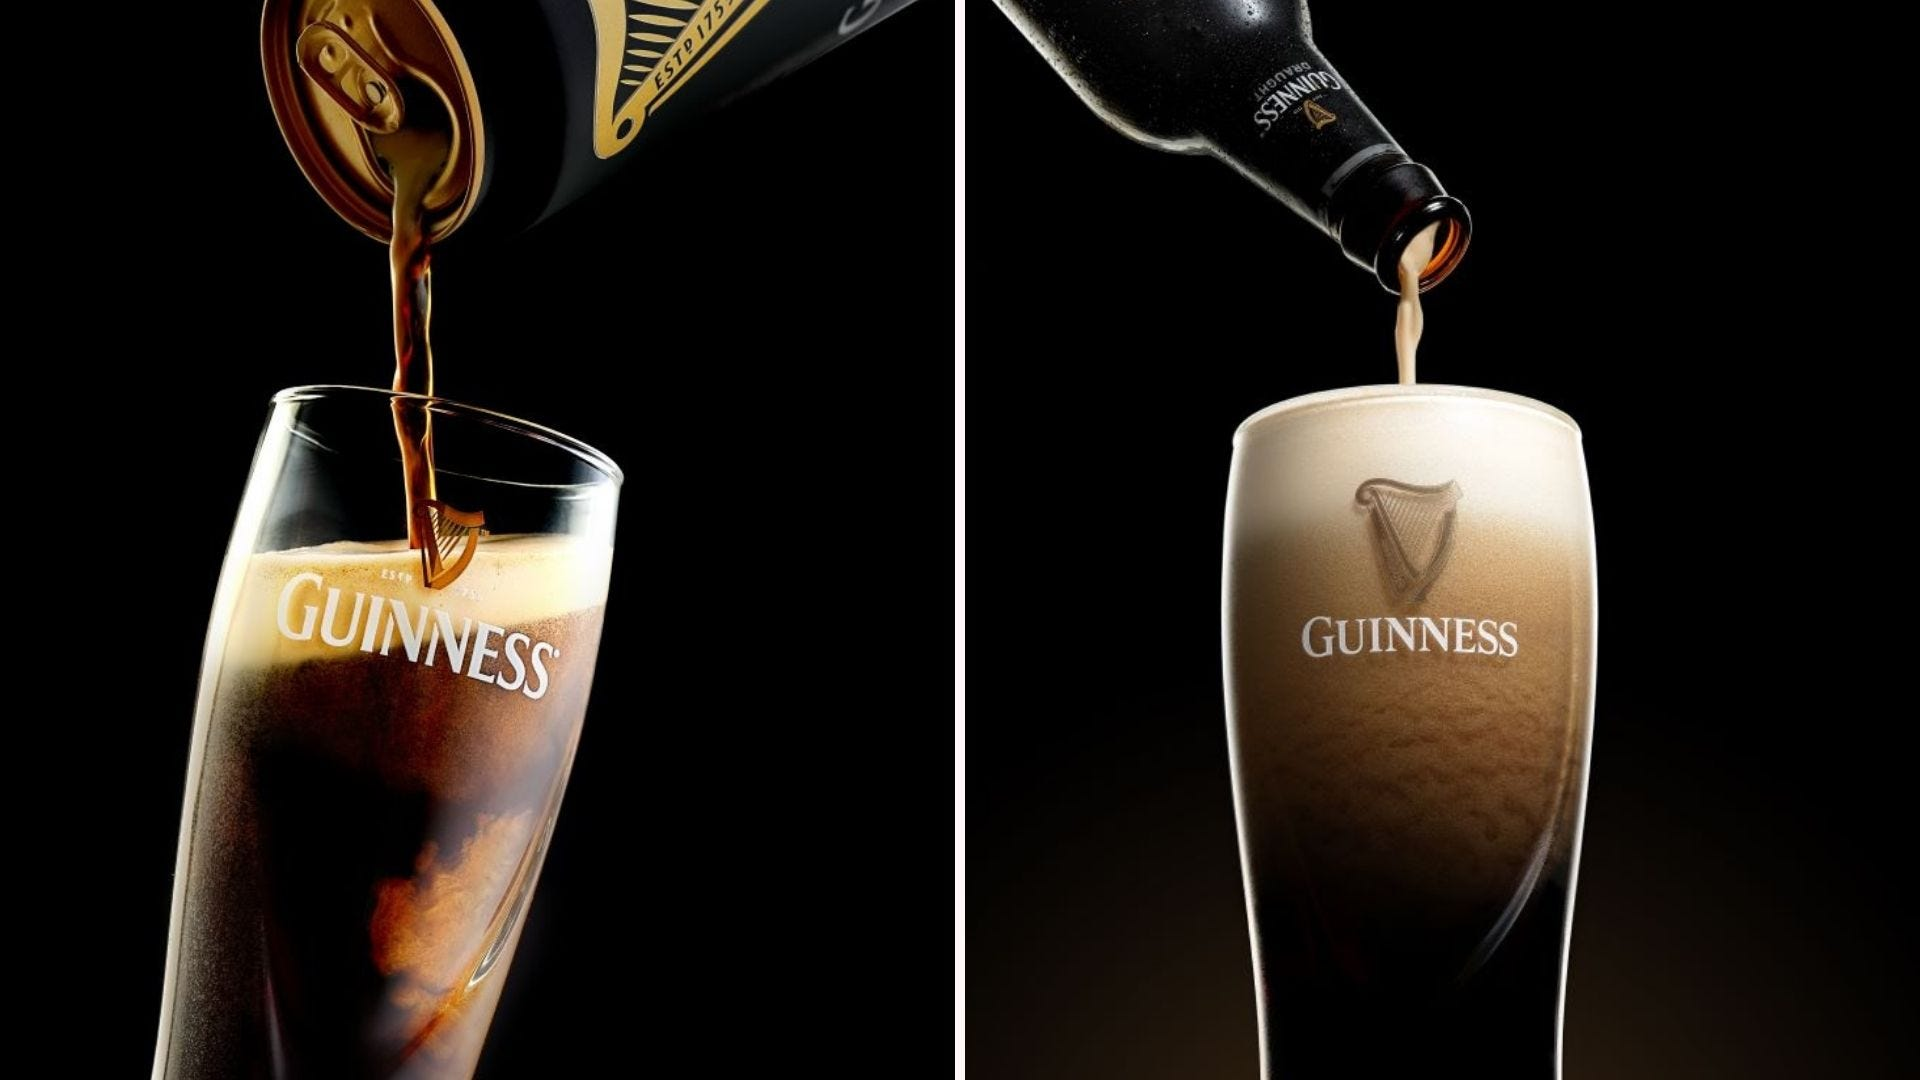 Guinness beer being poured correctly on the left and incorrectly on the right.